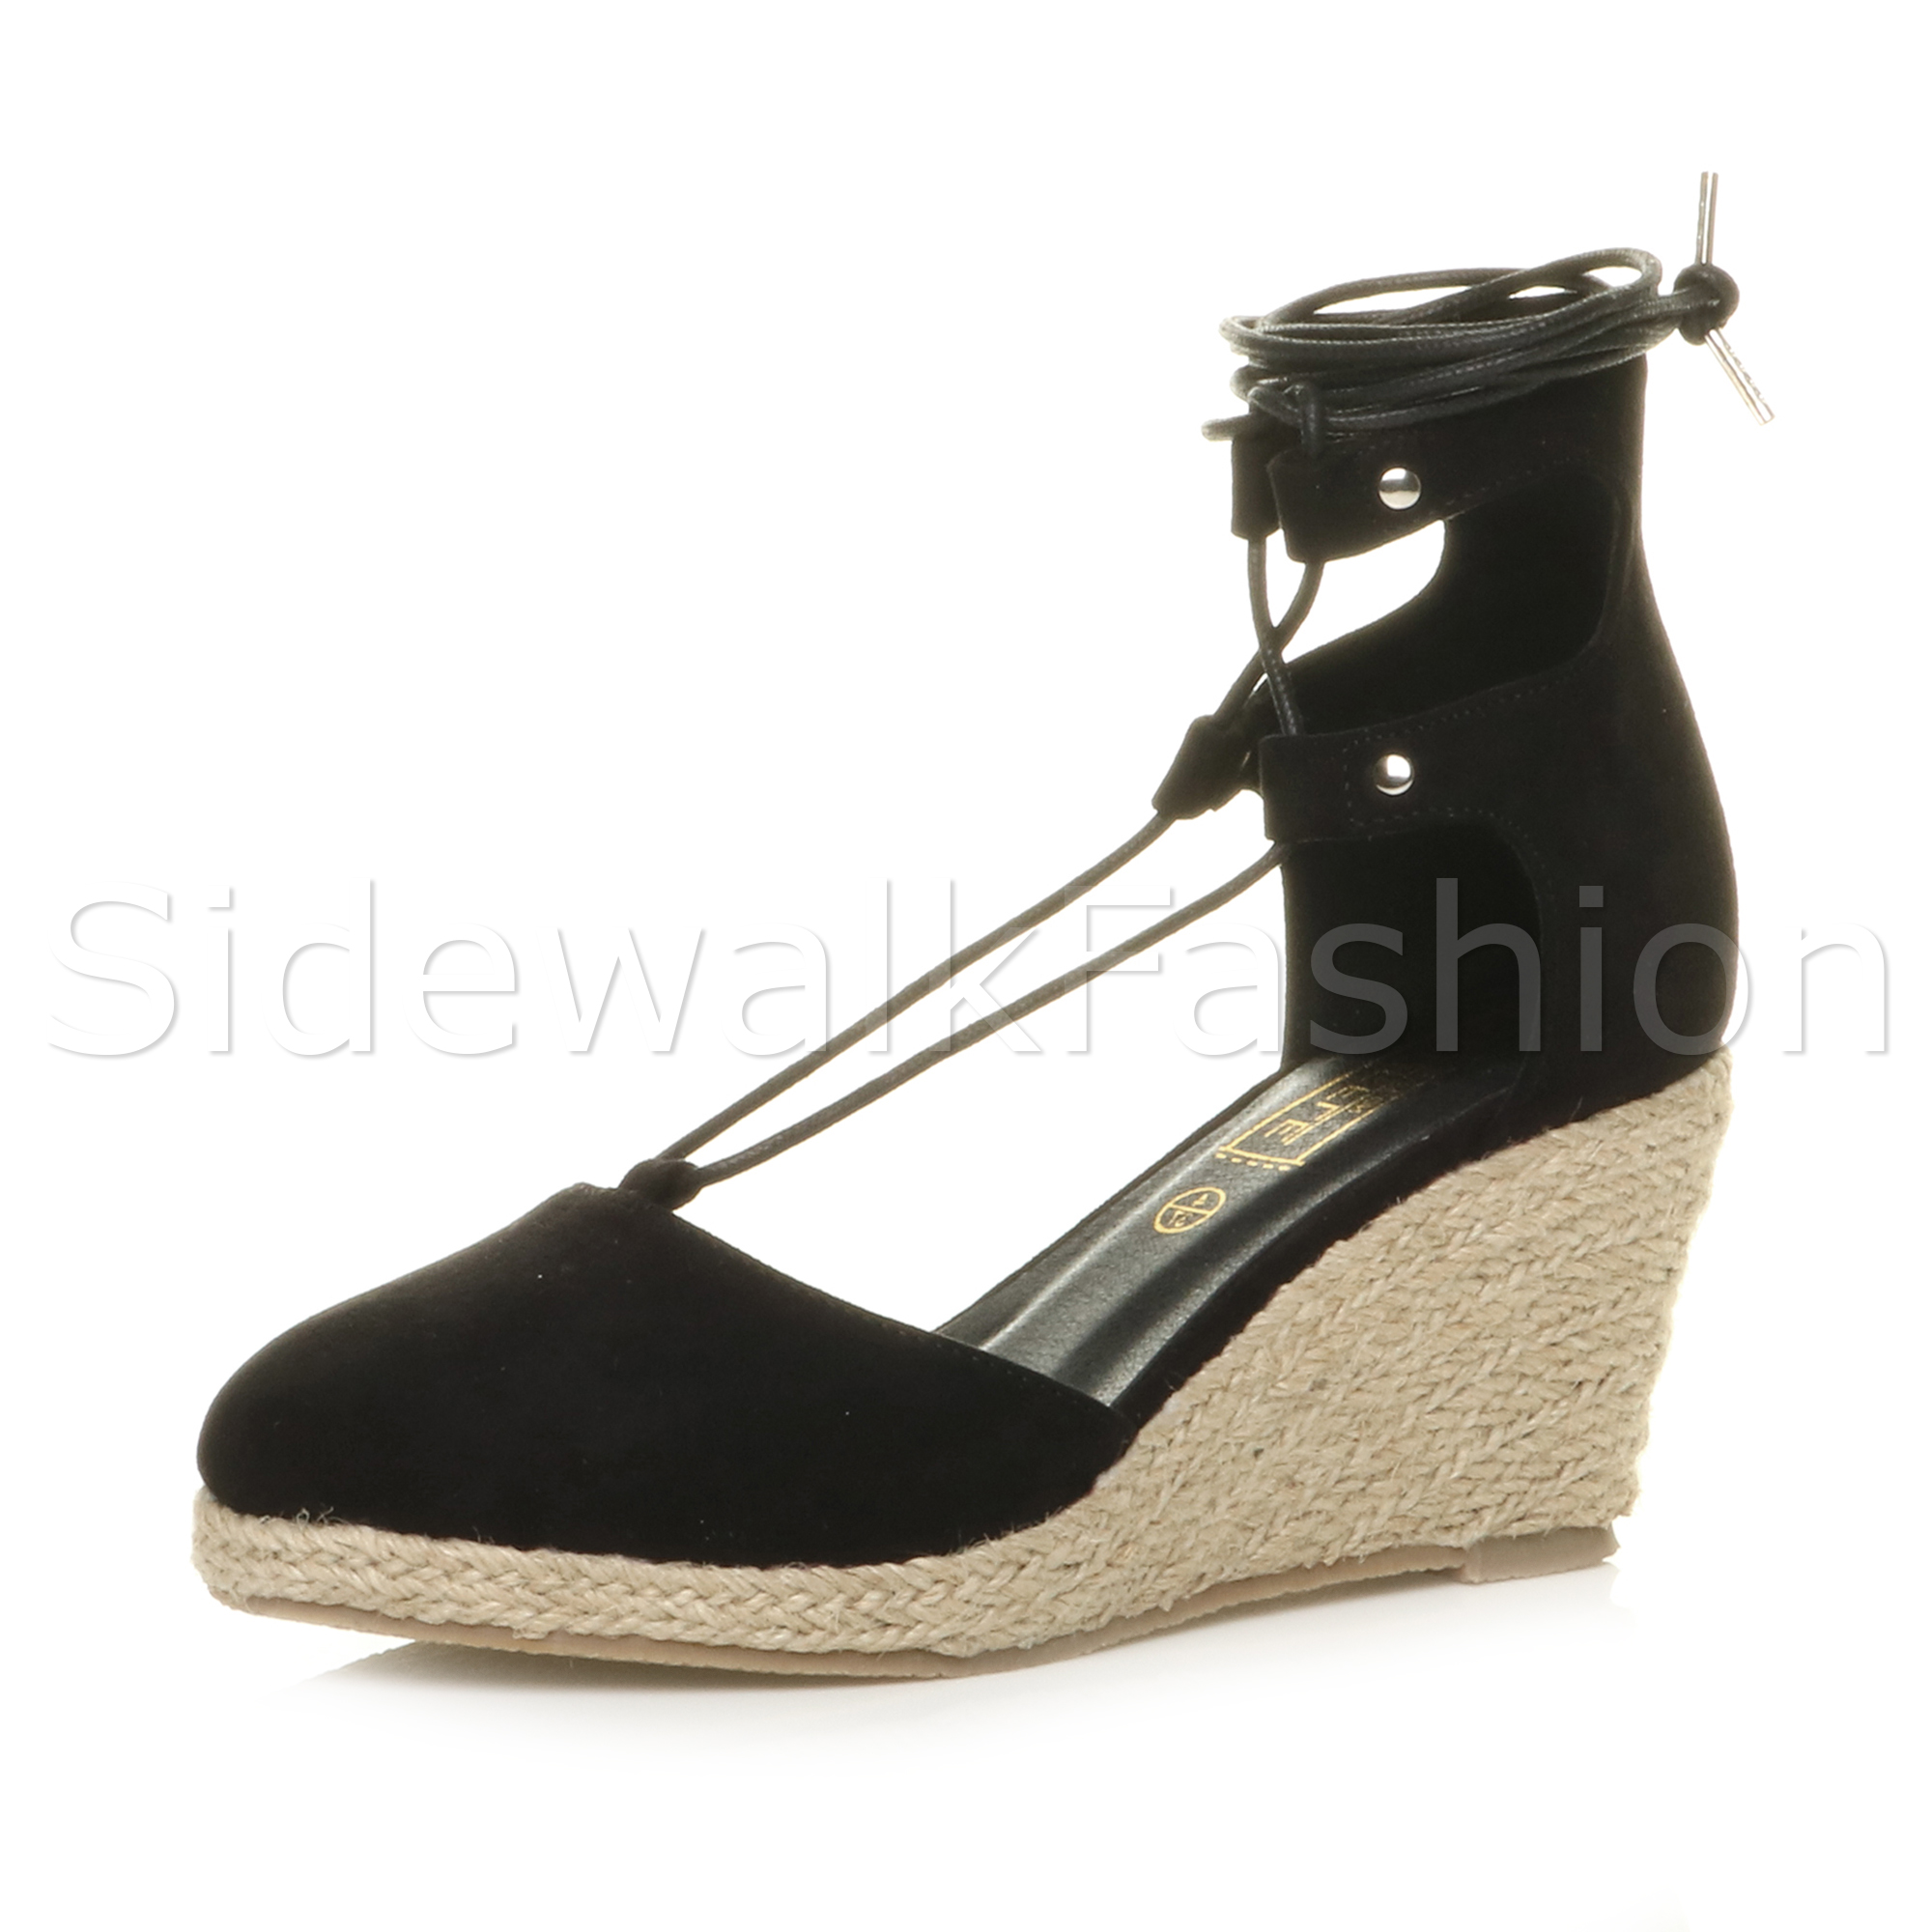 Cheetah Print Wedges | Canvas Espadrilles | Espadrilles Tie Up